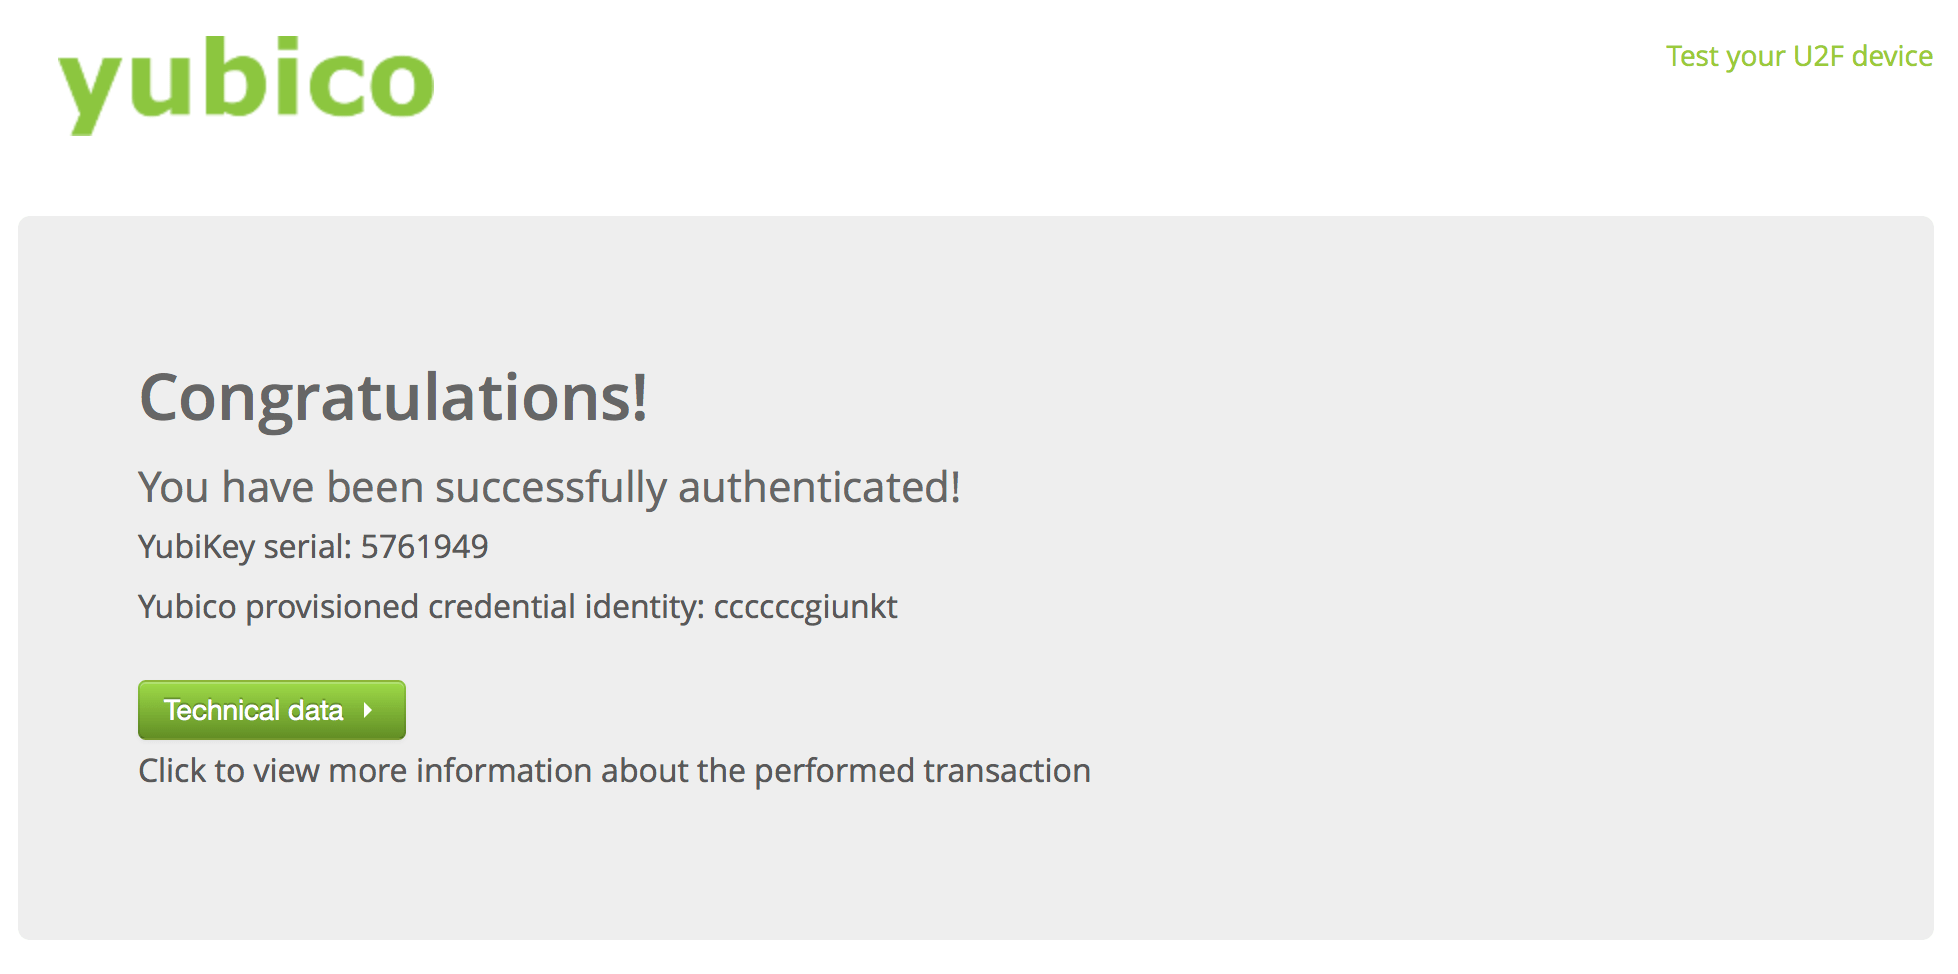 Yubico authentication test page.